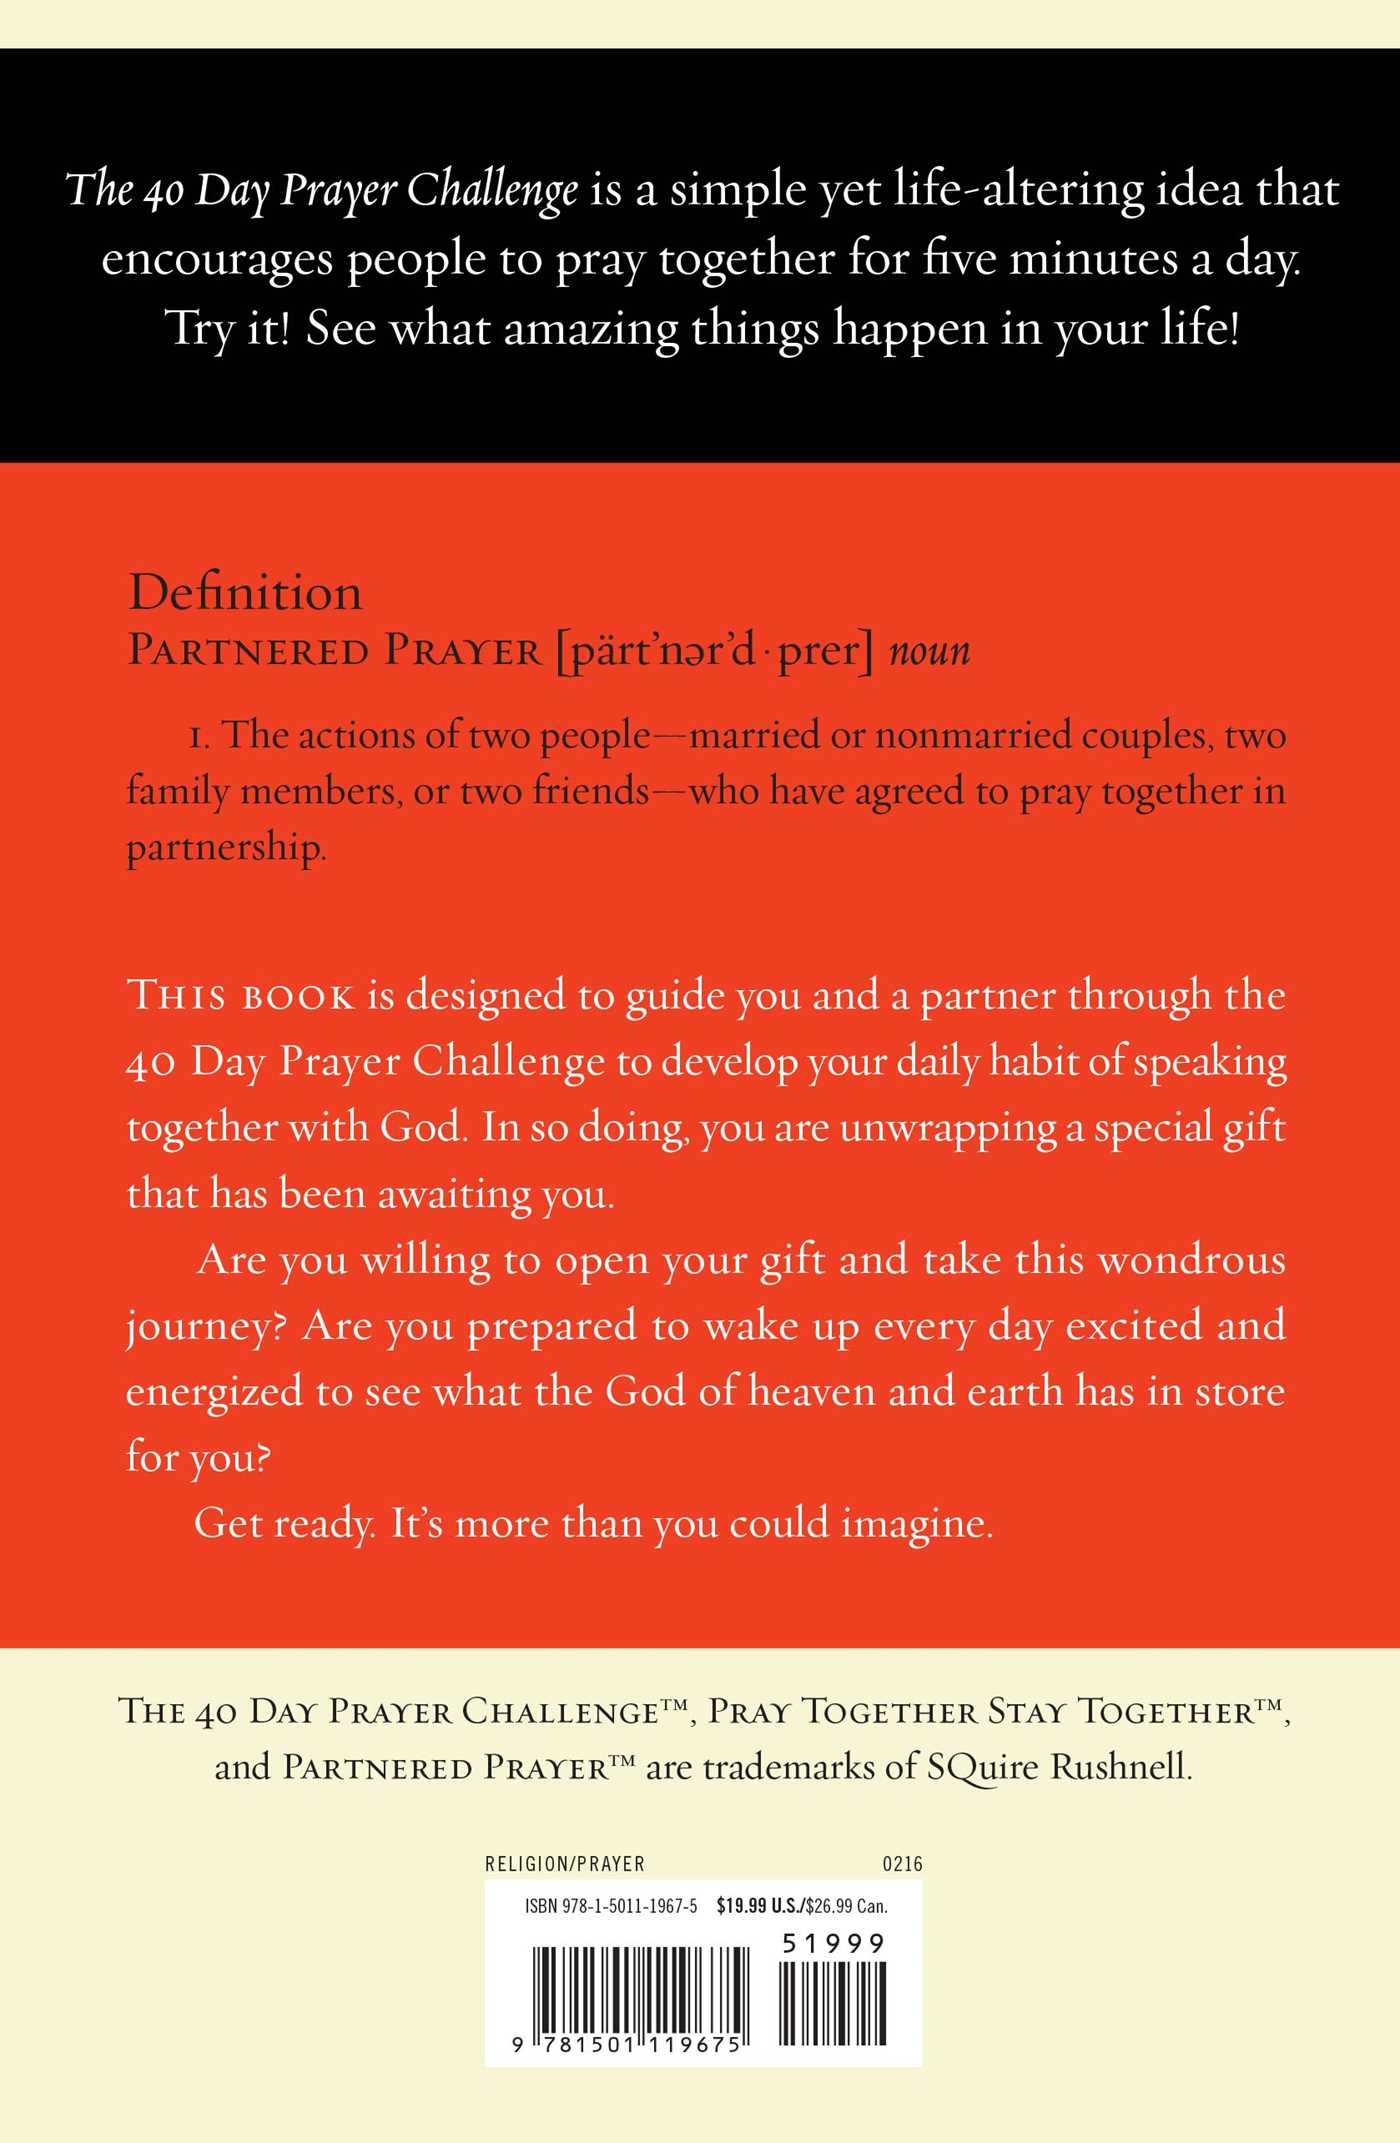 The 40 day prayer challenge 9781501119675 hr back